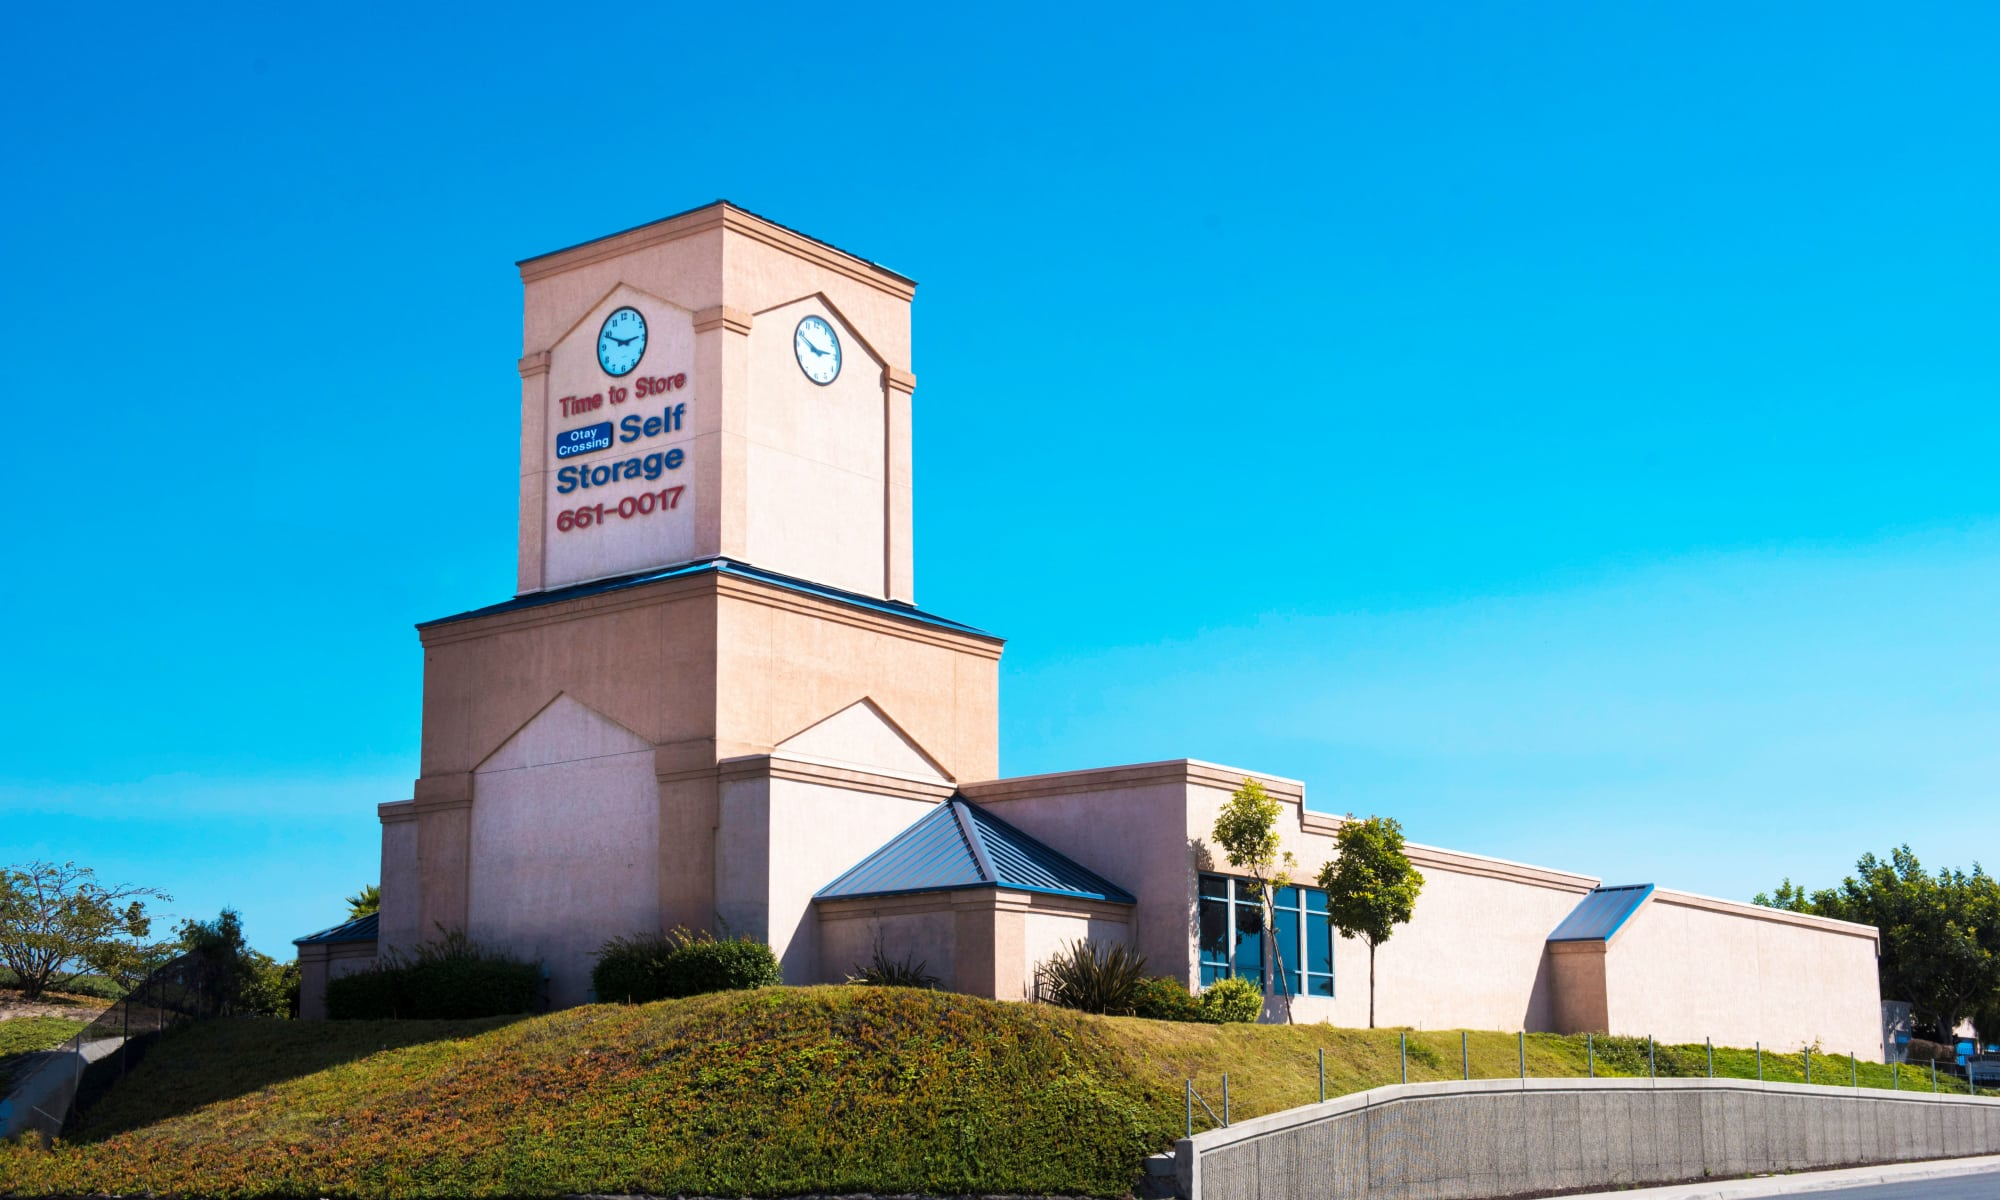 Choose Otay Crossing Self Storage for the best self storage in San Diego, CA.